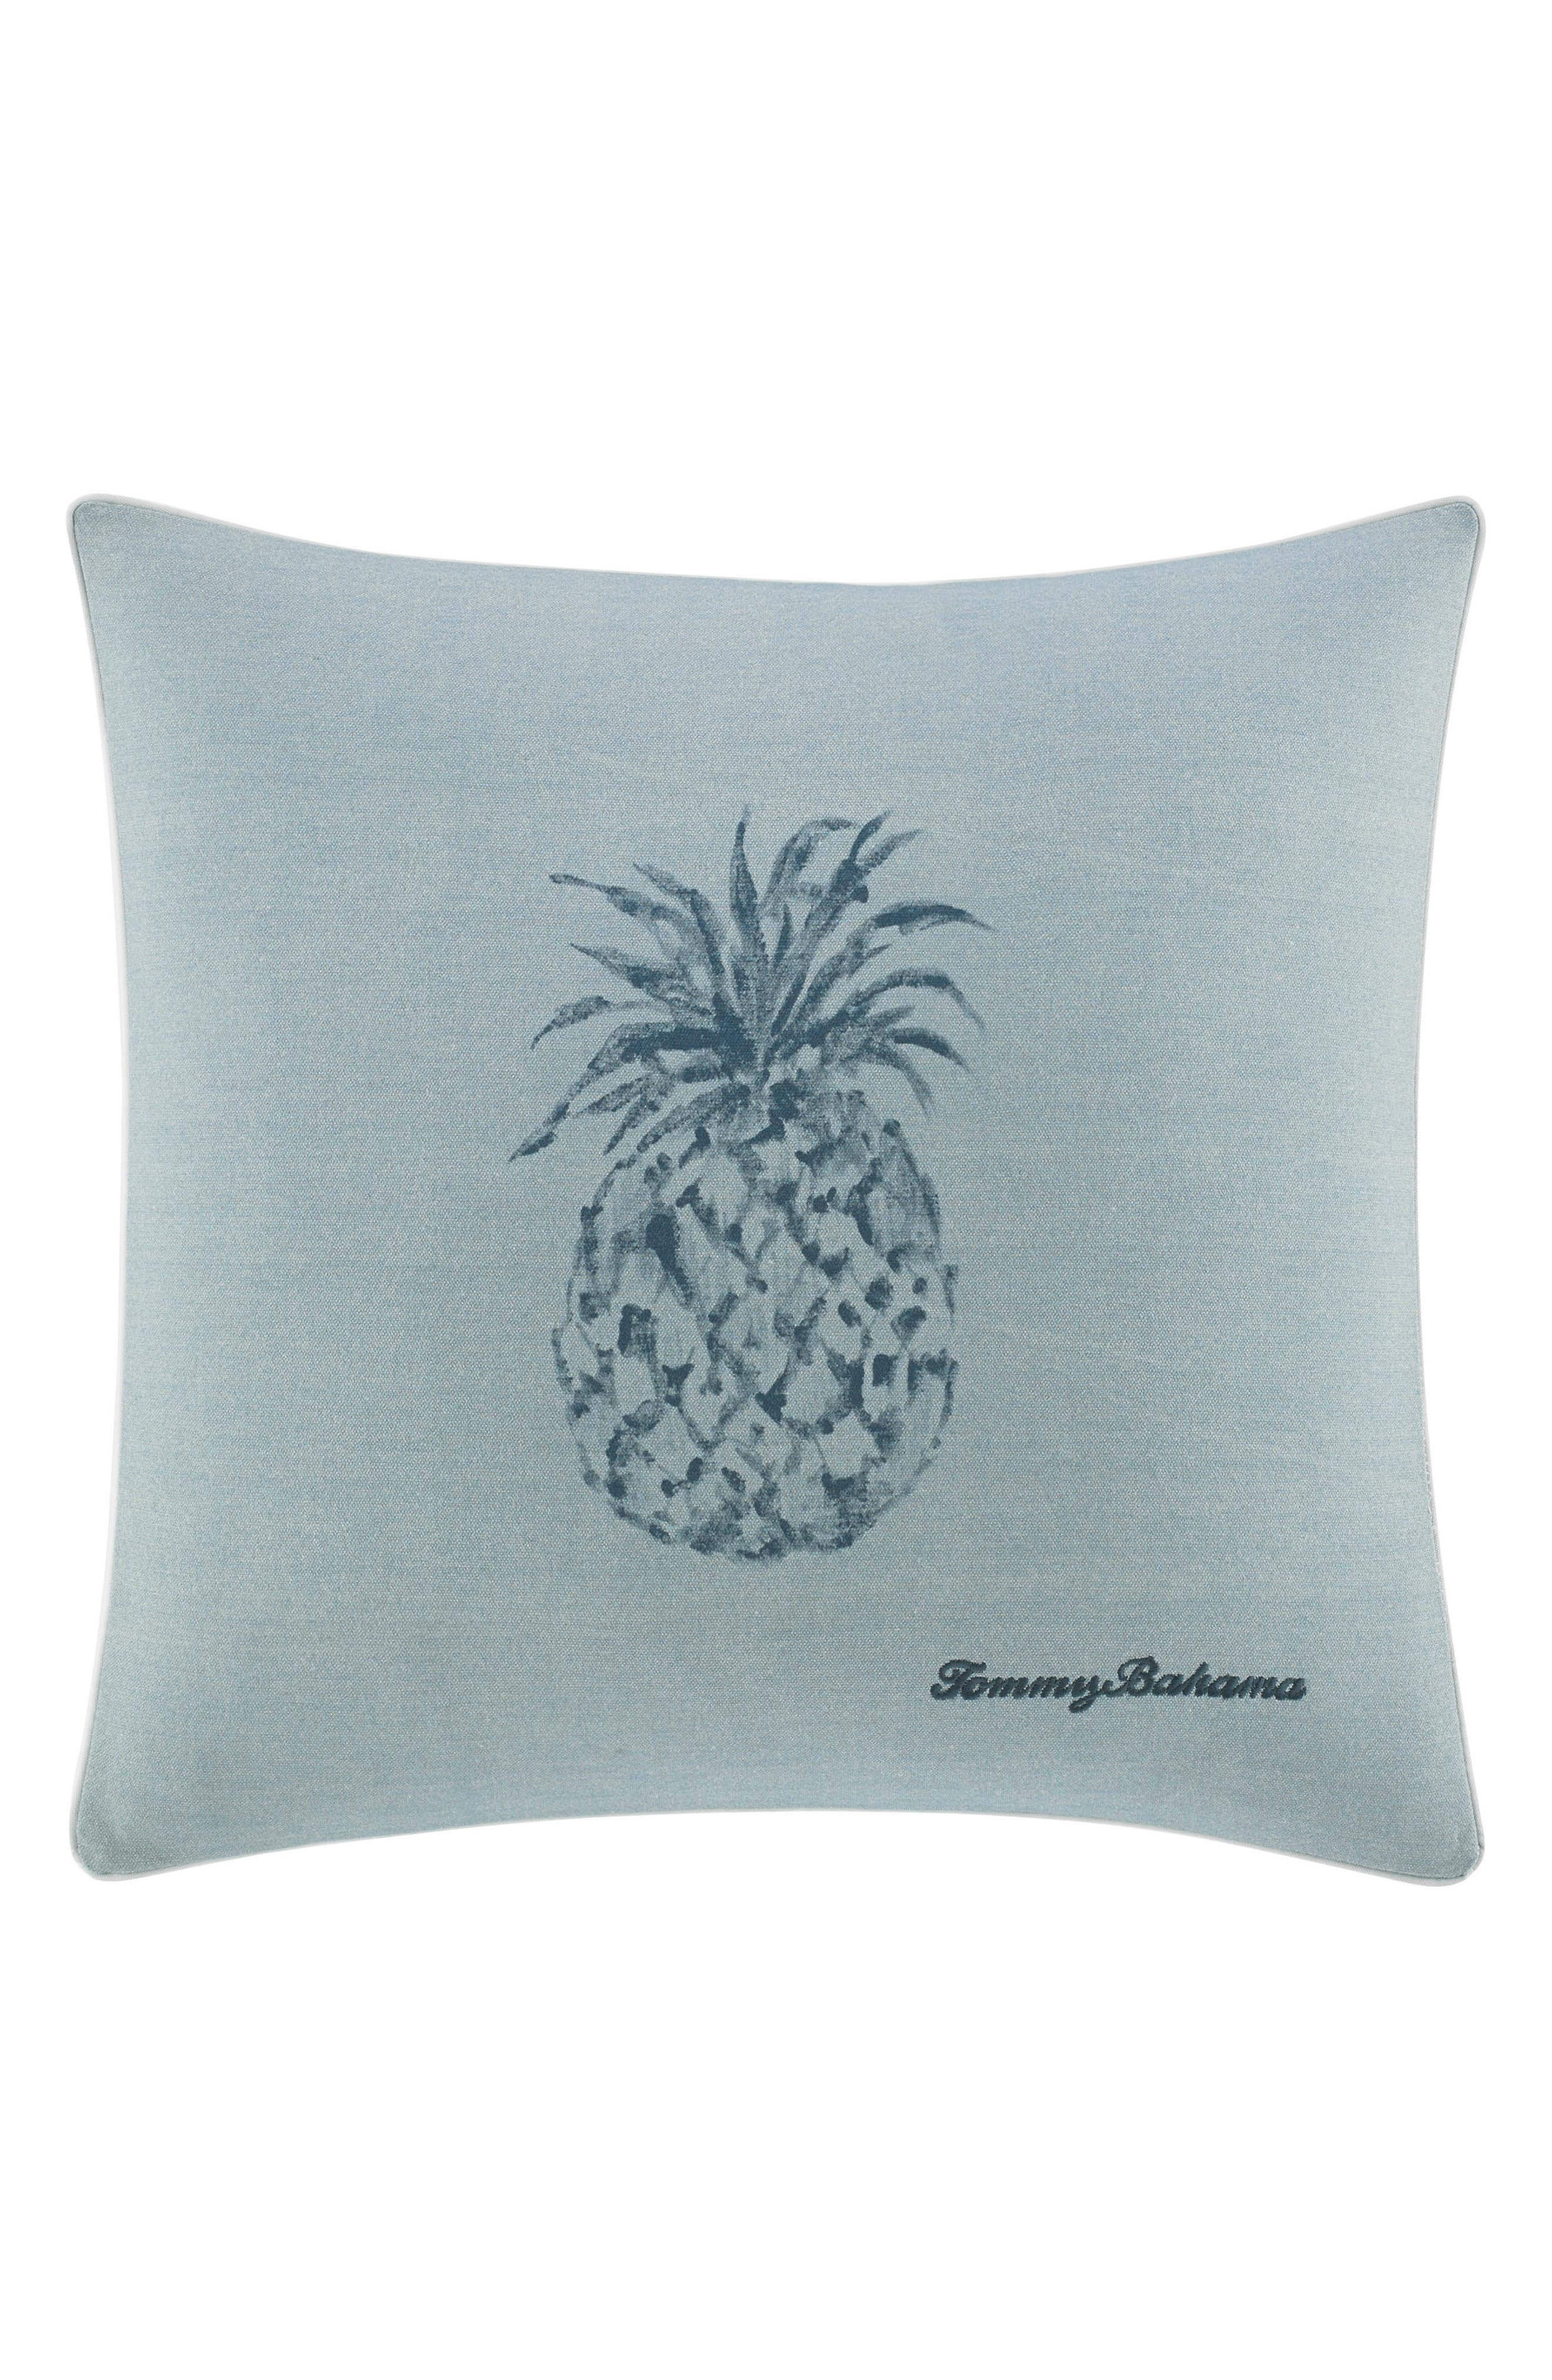 Alternate Image 1 Selected - Tommy Bahama Raw Coast Pineapple Pillow